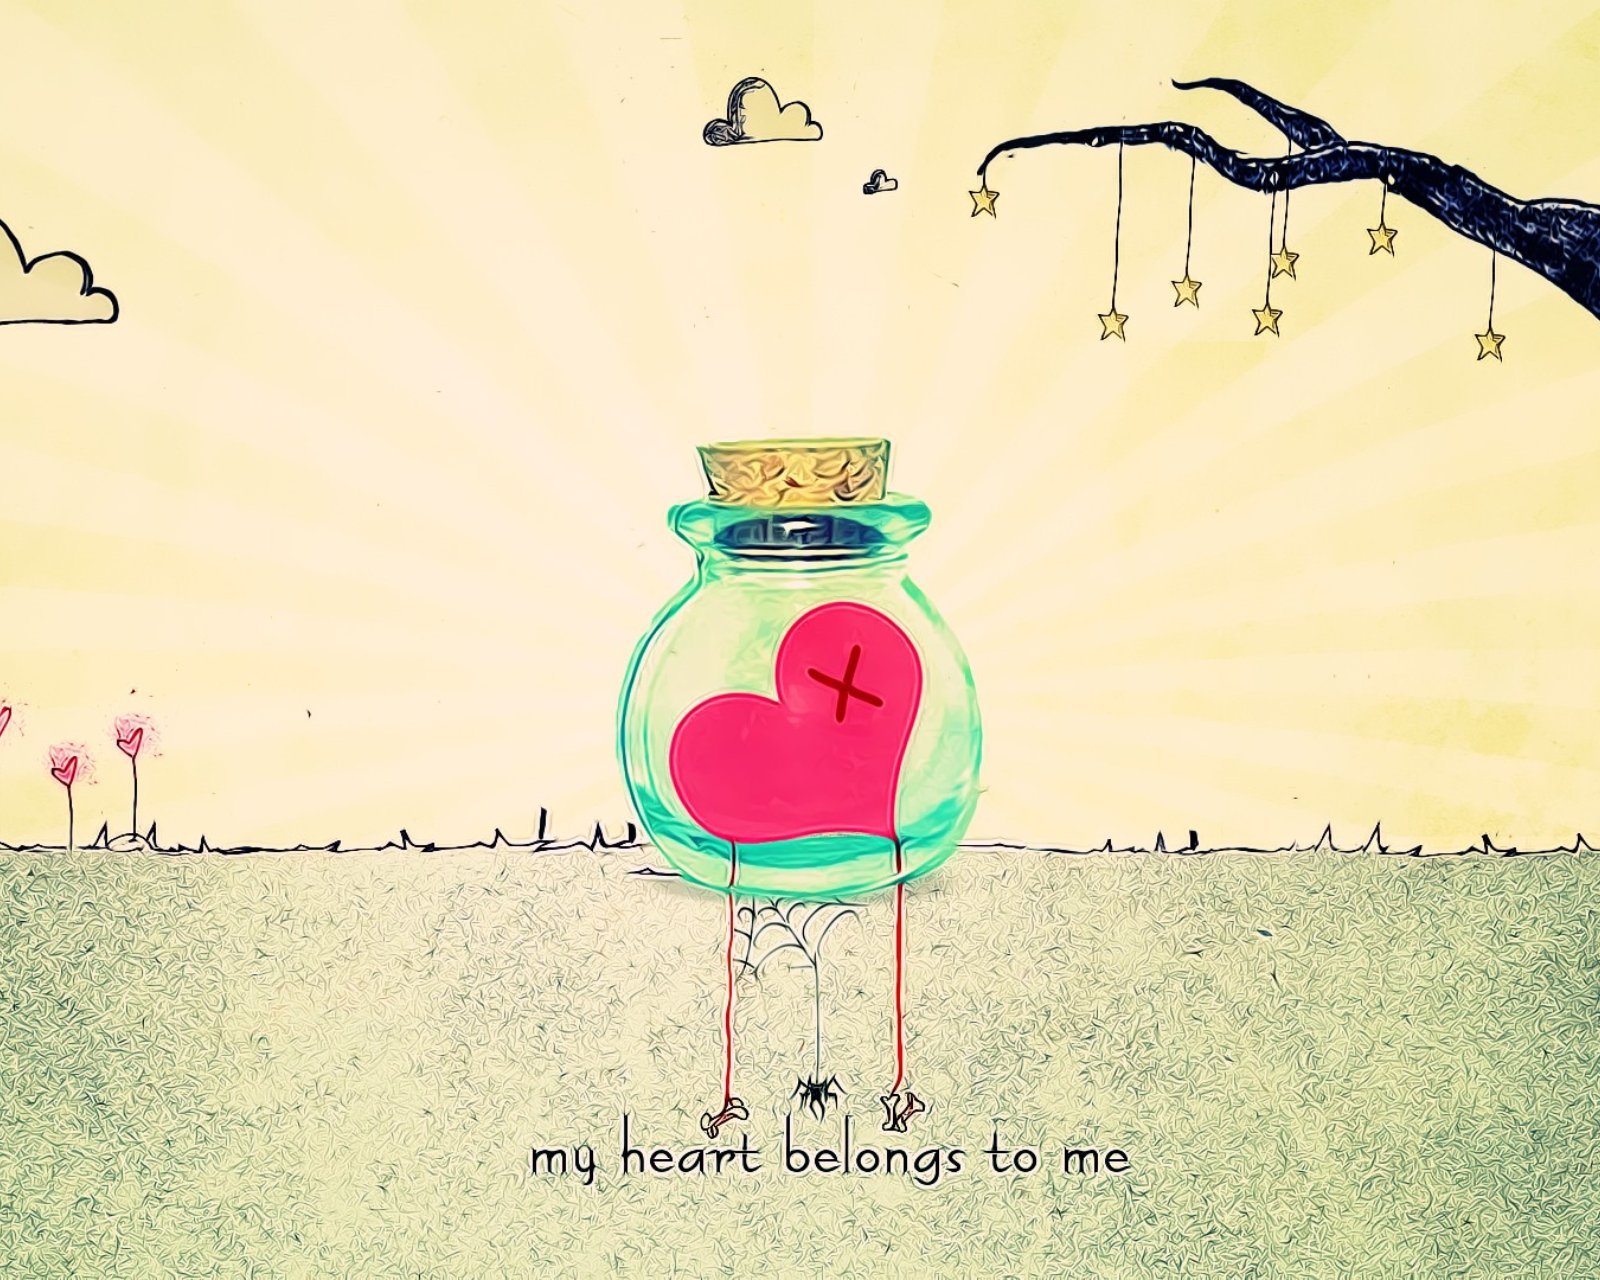 Cute Love For Mobile Phones Wallpaper Images Is 4k - Crazy Quotes About Me - HD Wallpaper